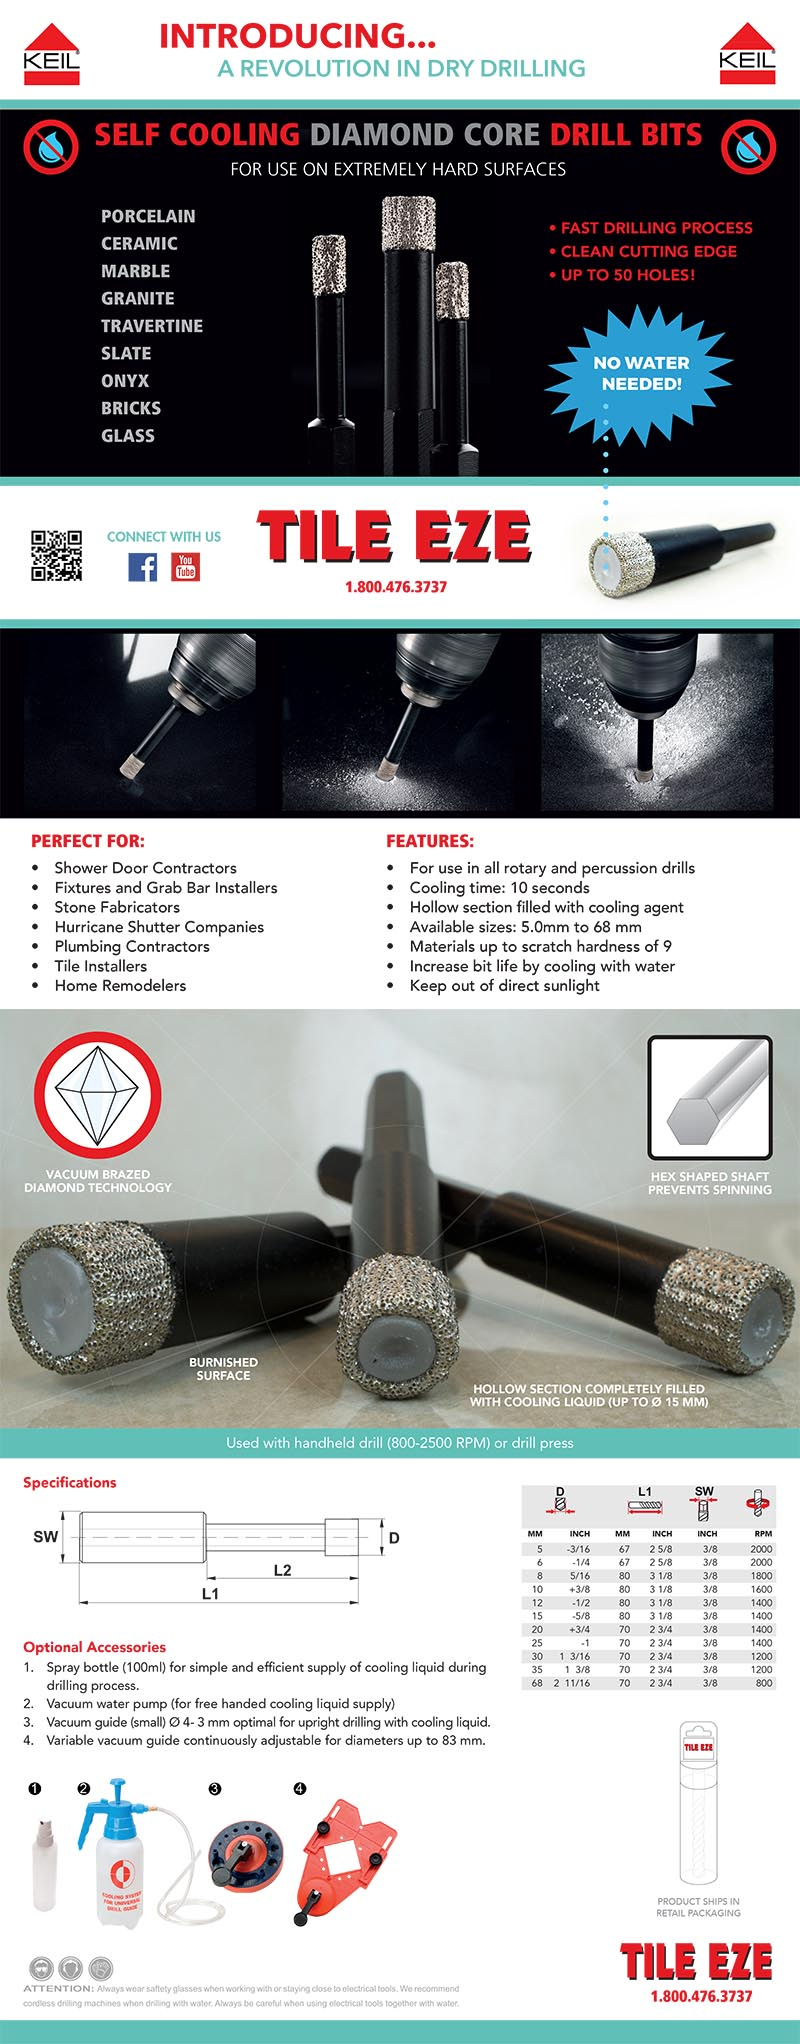 Diamond Core Drill Bit for hard stoneware tiles, roofing tiles, glass, marble, granite and slate